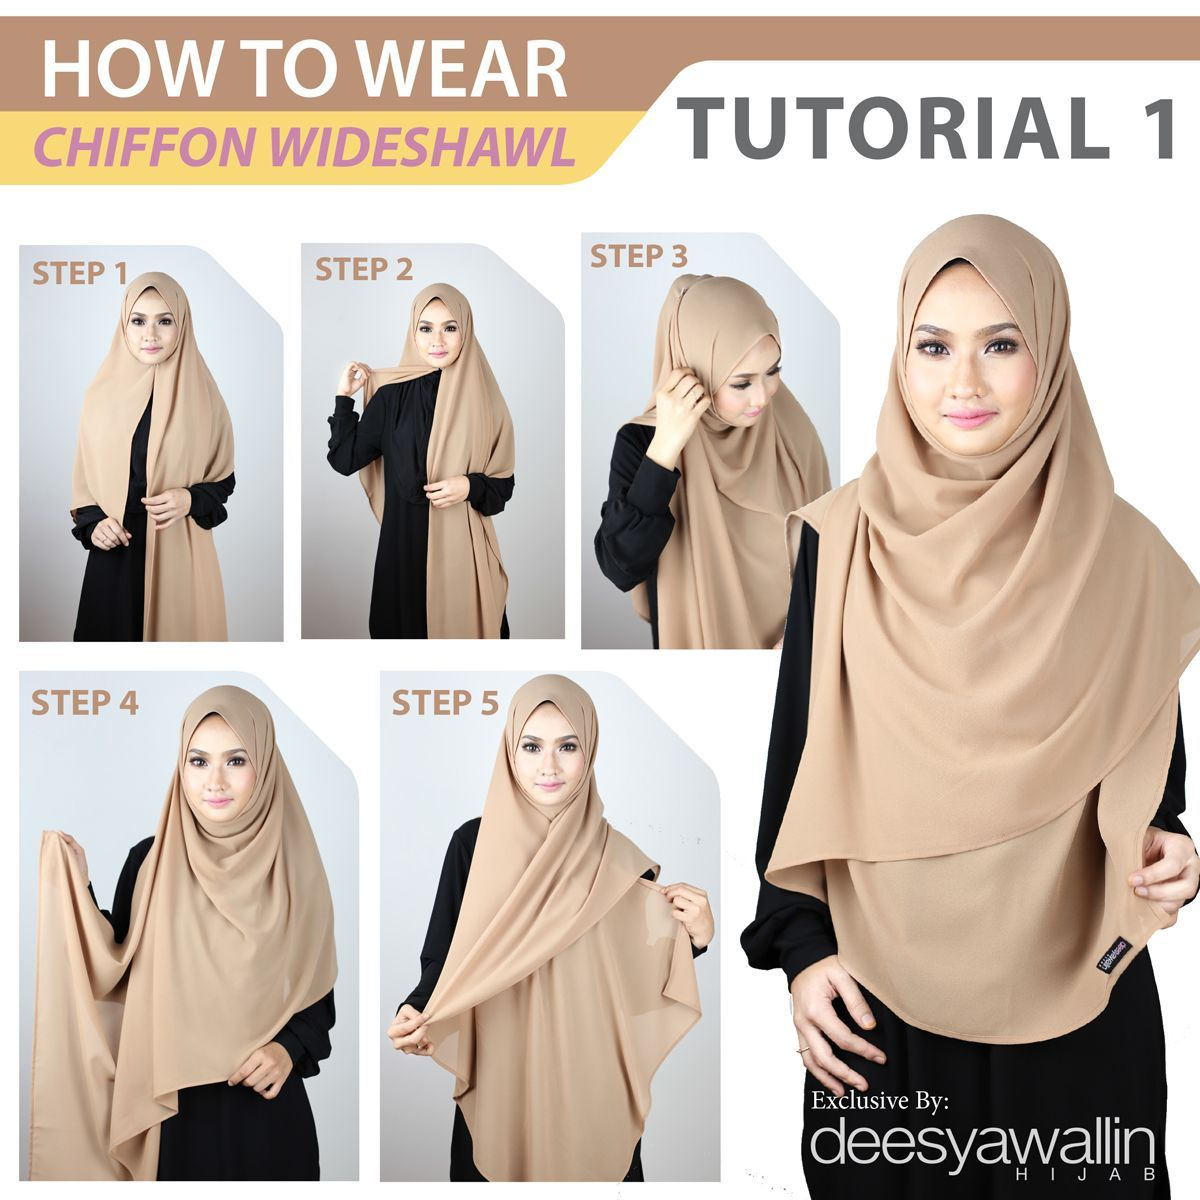 Tutorial Chiffon Wideshawl Facebook: Closet Heart Official